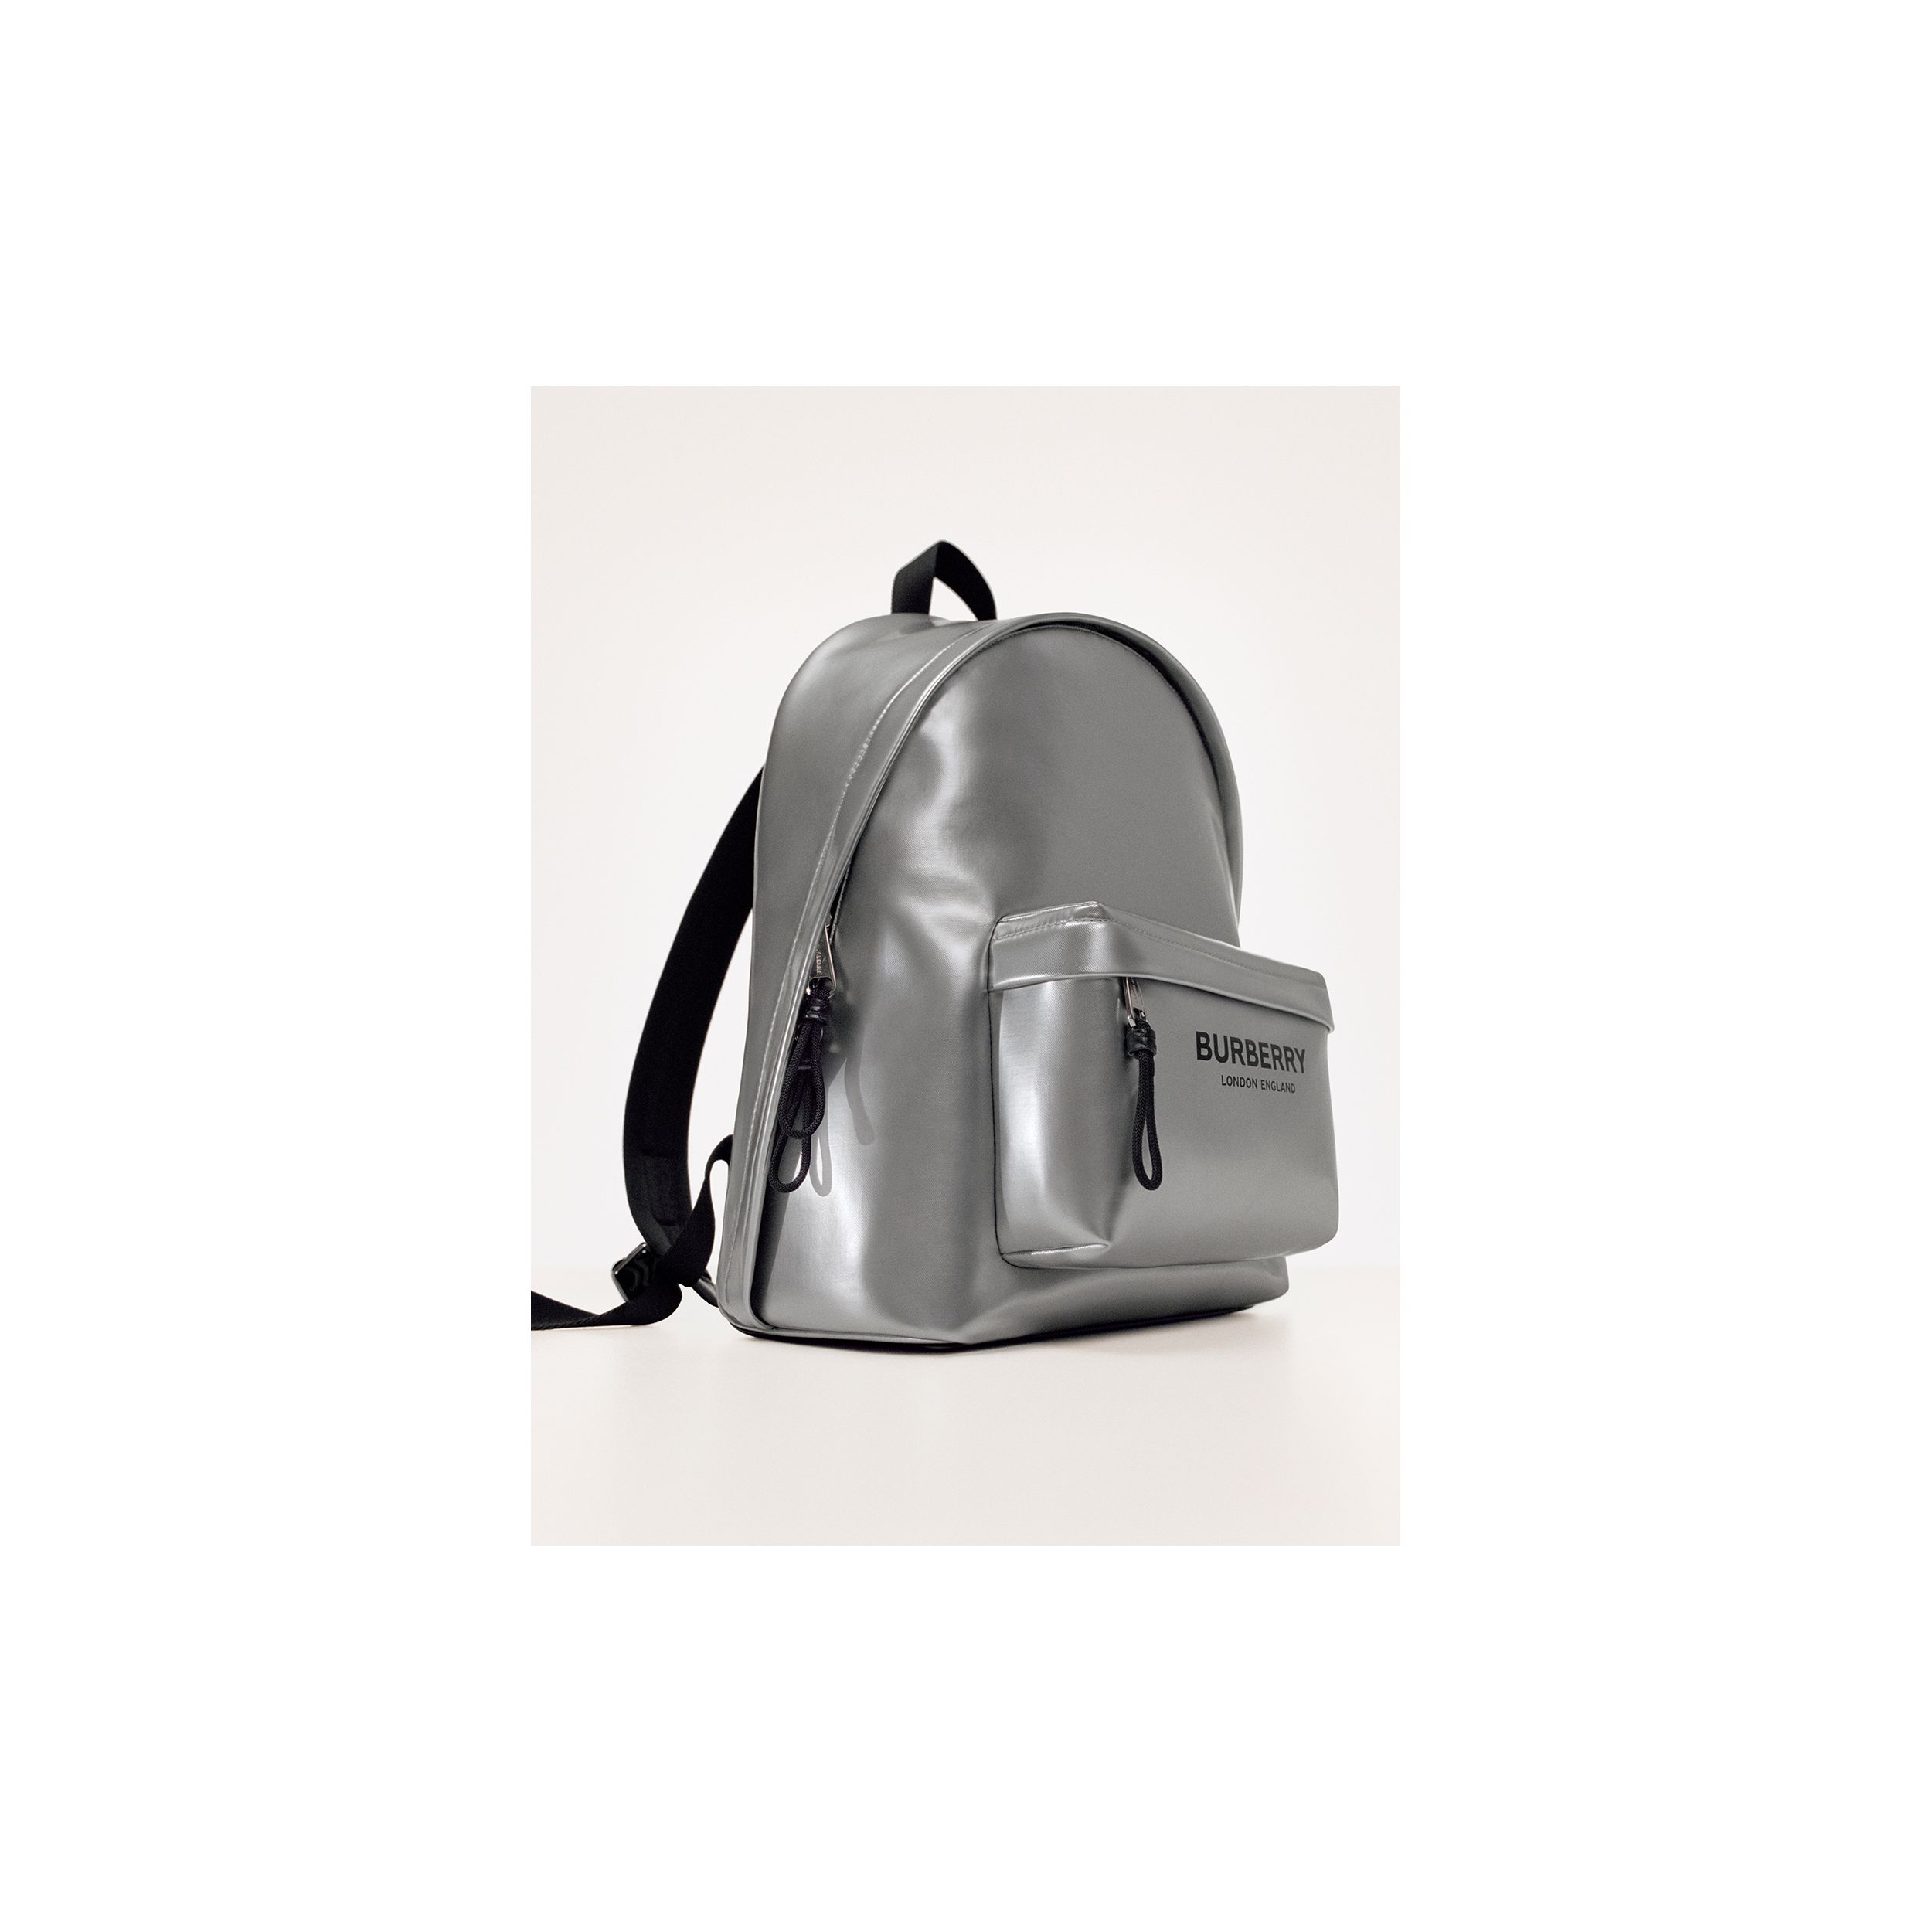 Metallic Coated Canvas Backpack in Silver | Burberry - 2